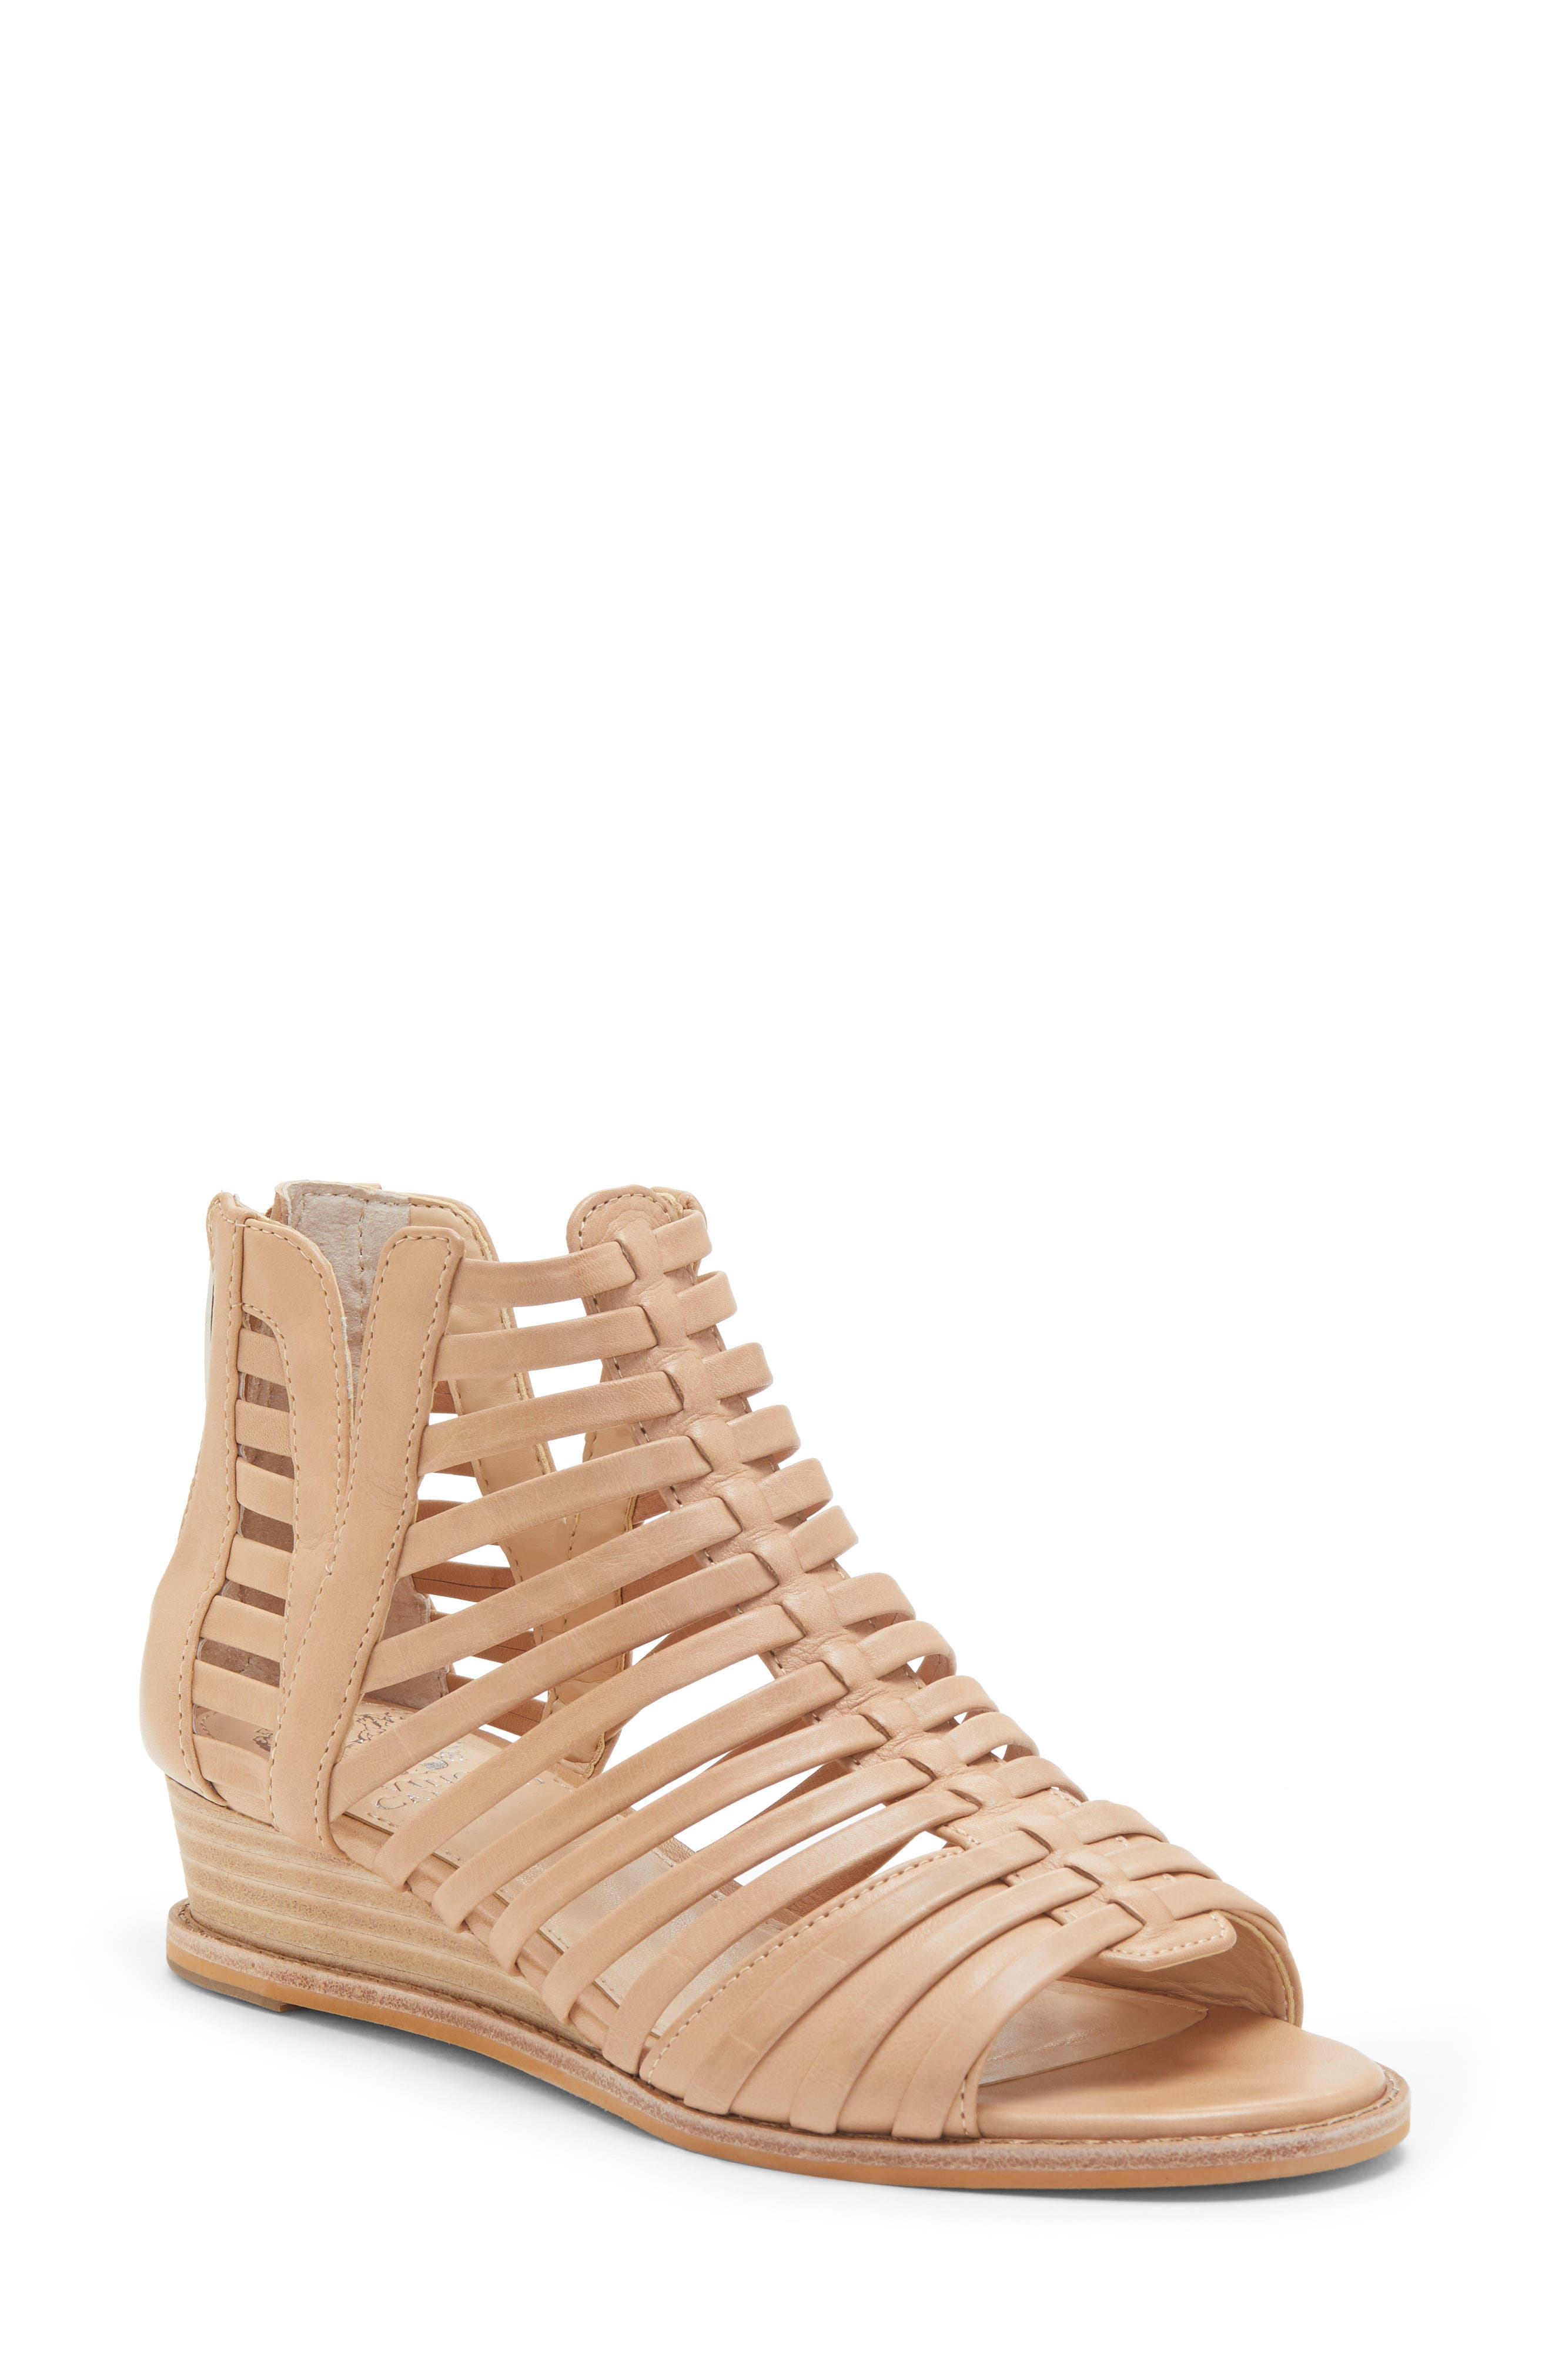 VINCE CAMUTO Revey Wedge Sandal, Main, color, NATURAL LEATHER